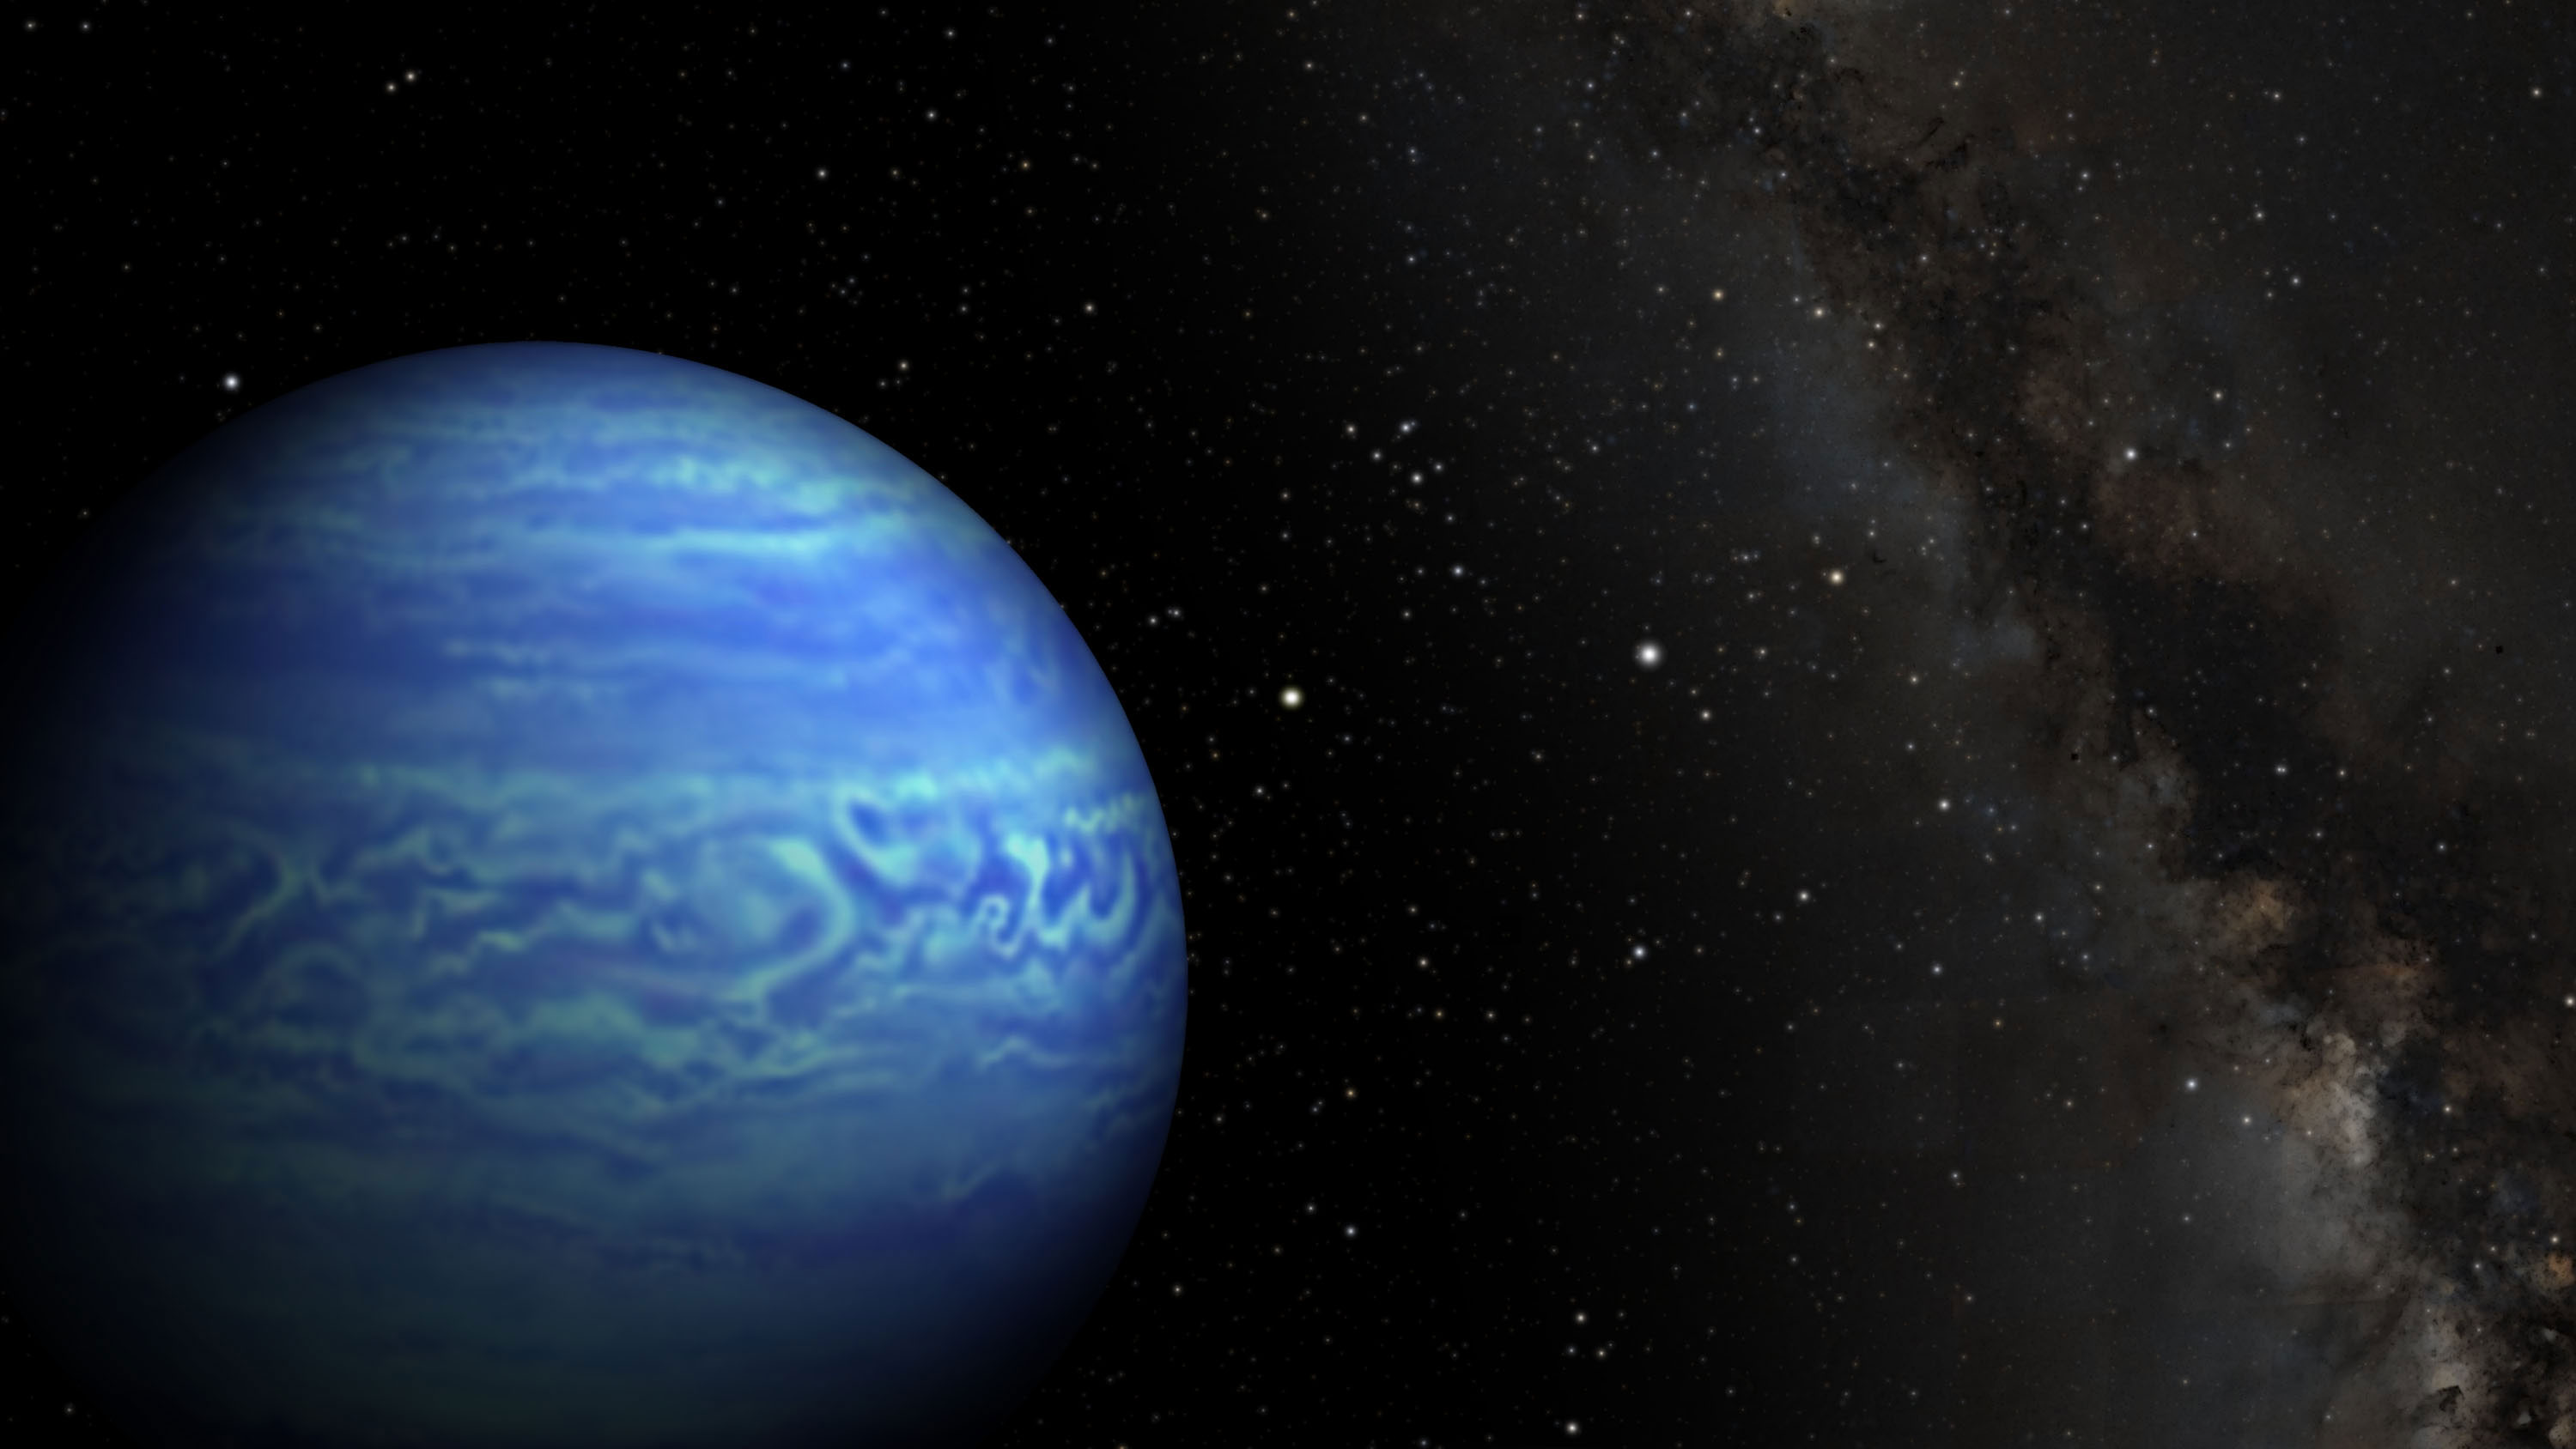 This artist's conception shows the object named WISE J085510.83-071442.5, the coldest known brown dwarf. It is as cold as the North Pole. This celestial orb is also the fourth closest to our sun, at 7.2 light-years from Earth. Credit: NASA/JPL-Caltech/Penn State University